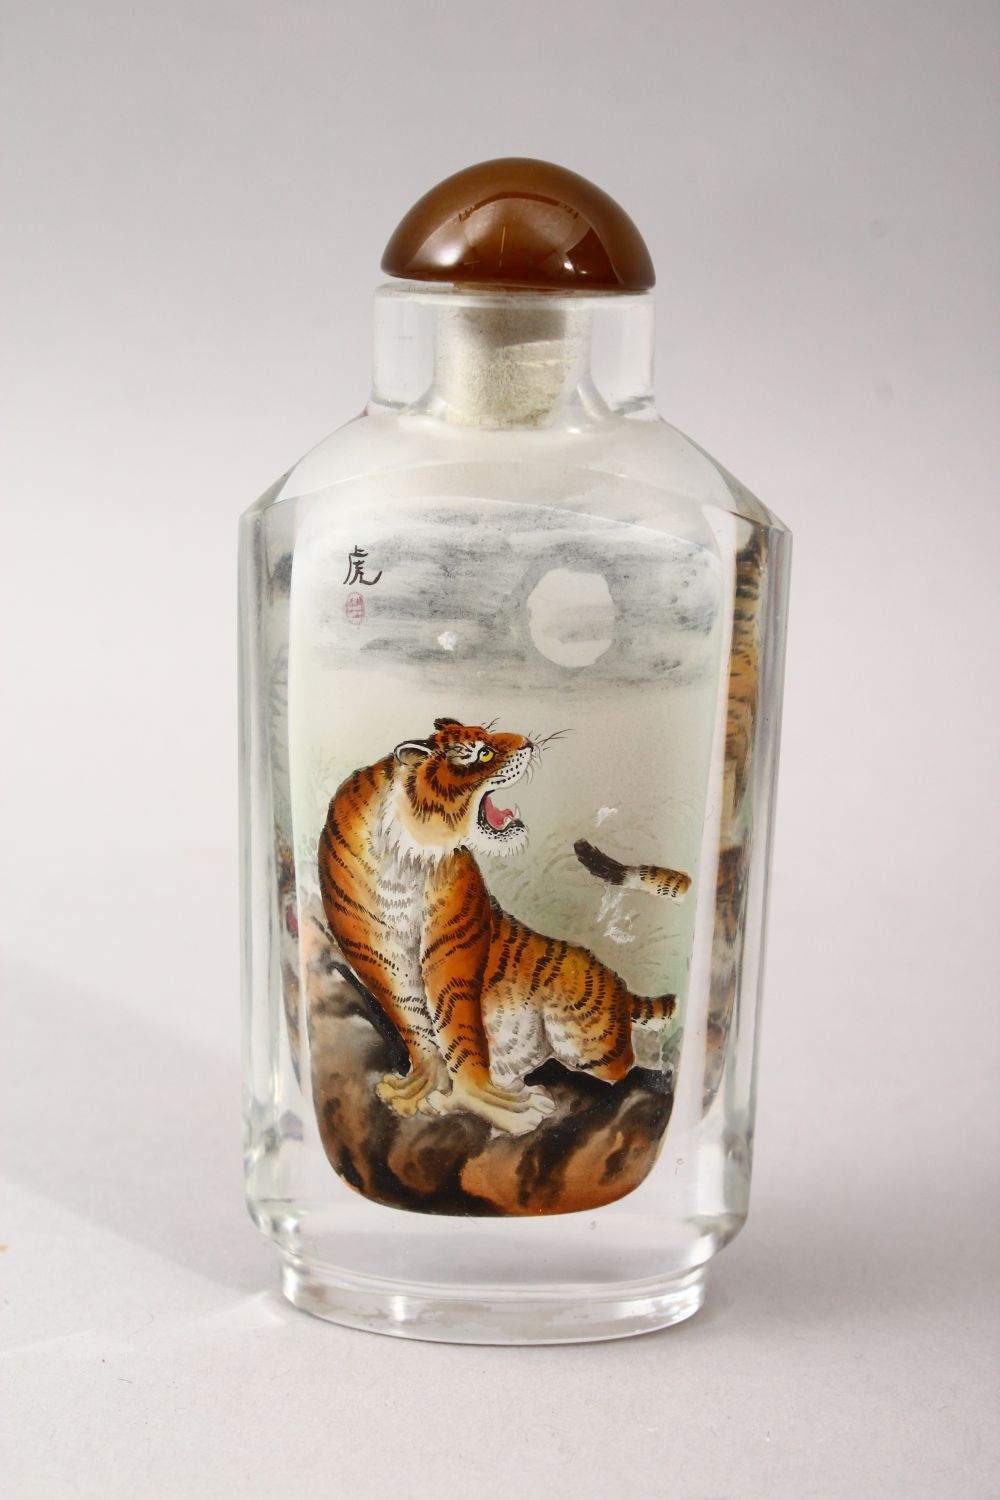 A GOOD 19TH / 20TH CENTURY CHINESE REVERSE PAINTED GLASS SNUFF BOTTLE, depicting scenes of a - Image 2 of 4